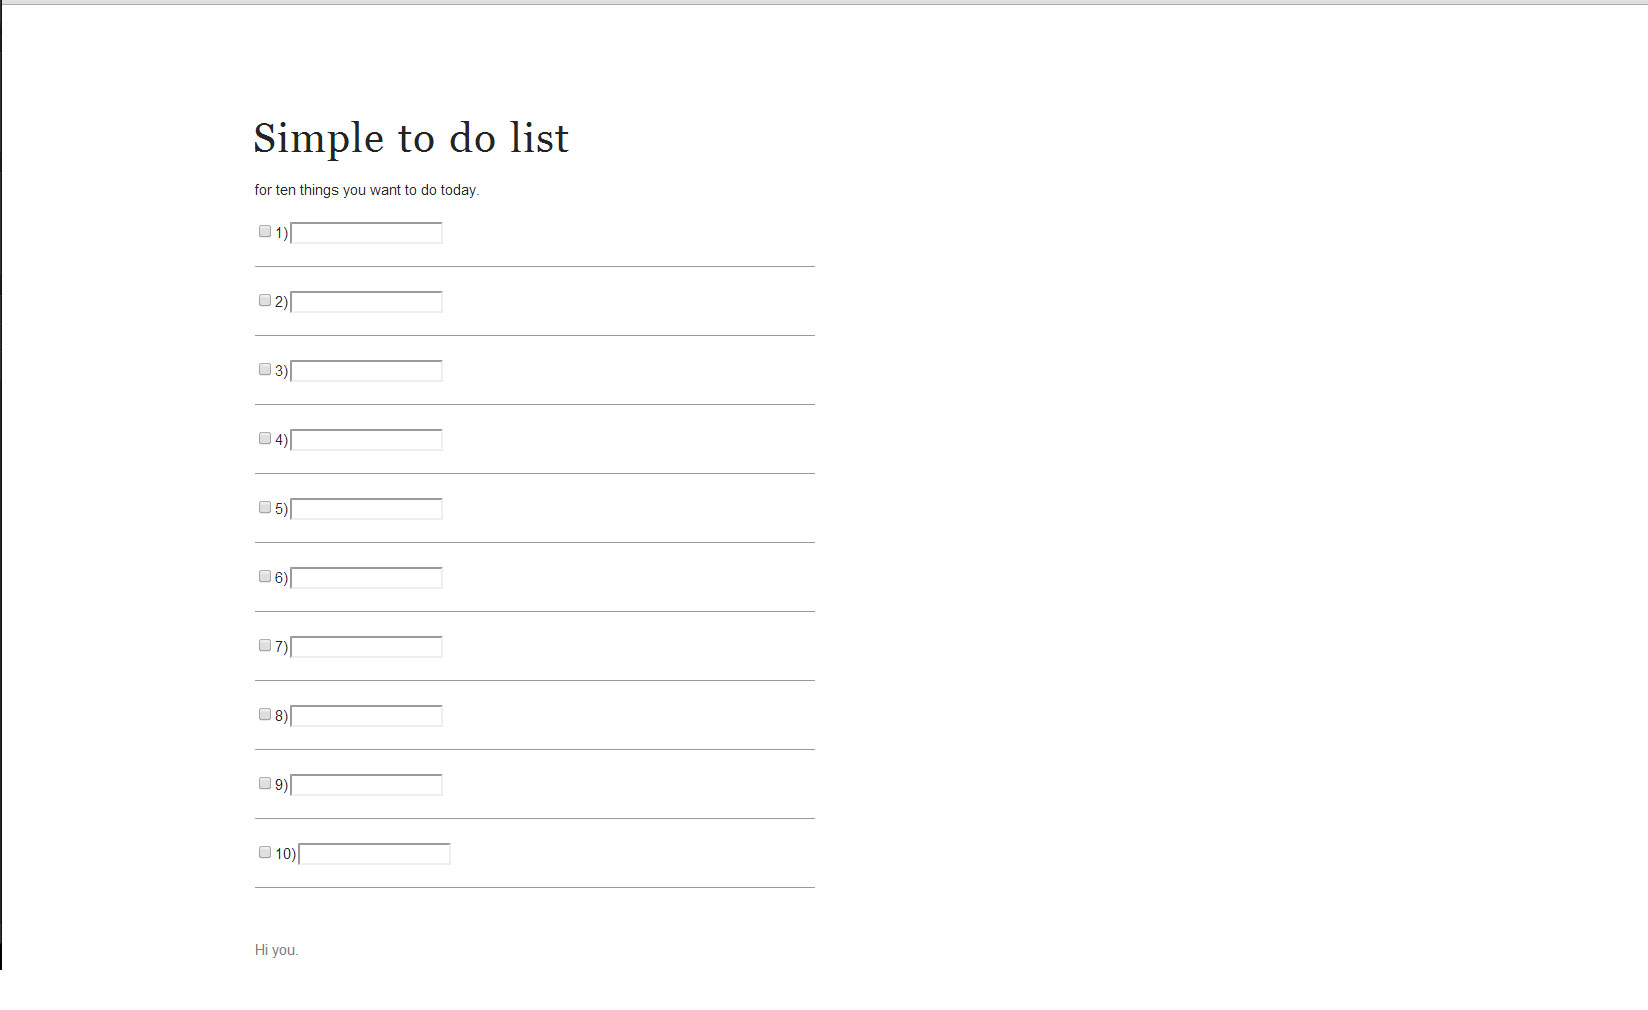 simple to do list website